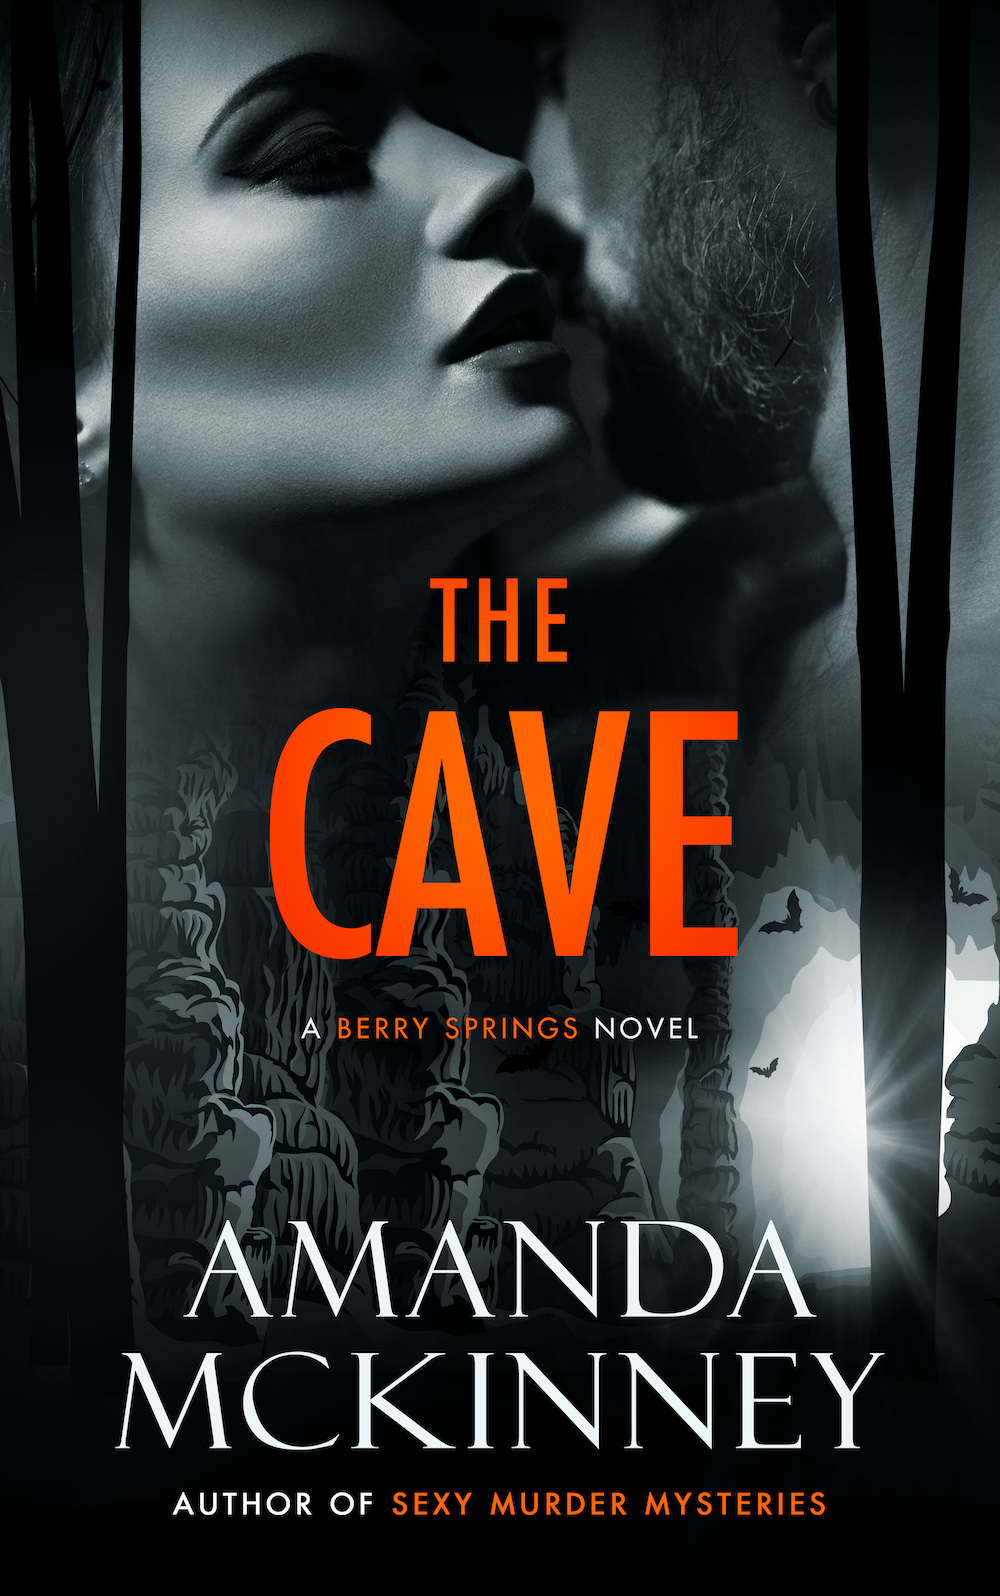 The Cave by Amanda McKinney